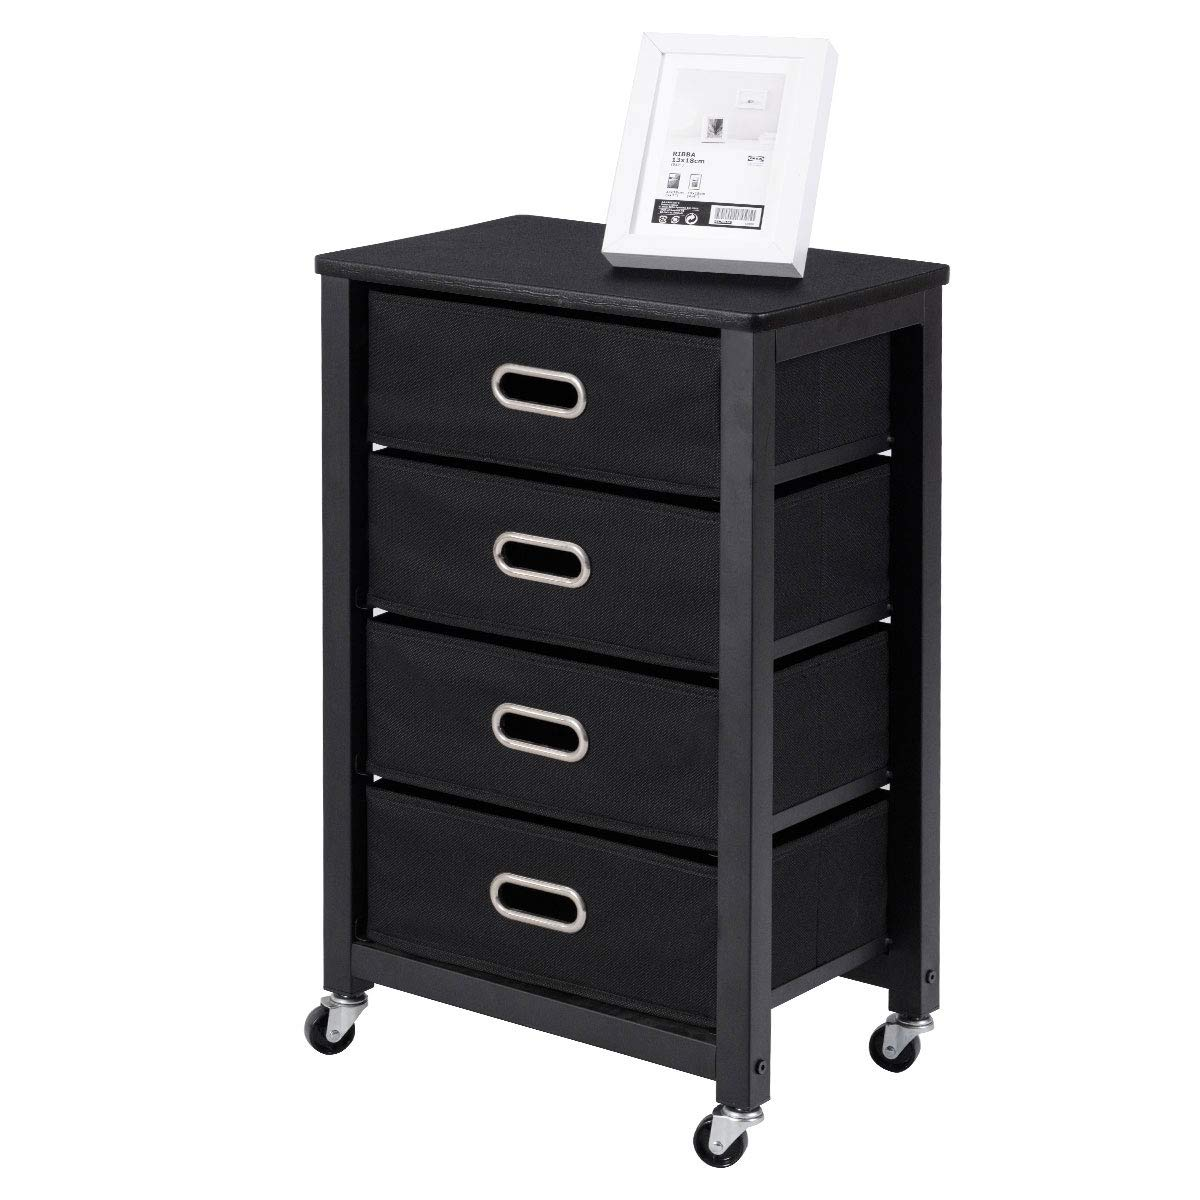 Giantex Filing Cabinet Heavy Duty Mobile Storage Rolling File Cabinet with 4 Drawers Black by Giantex